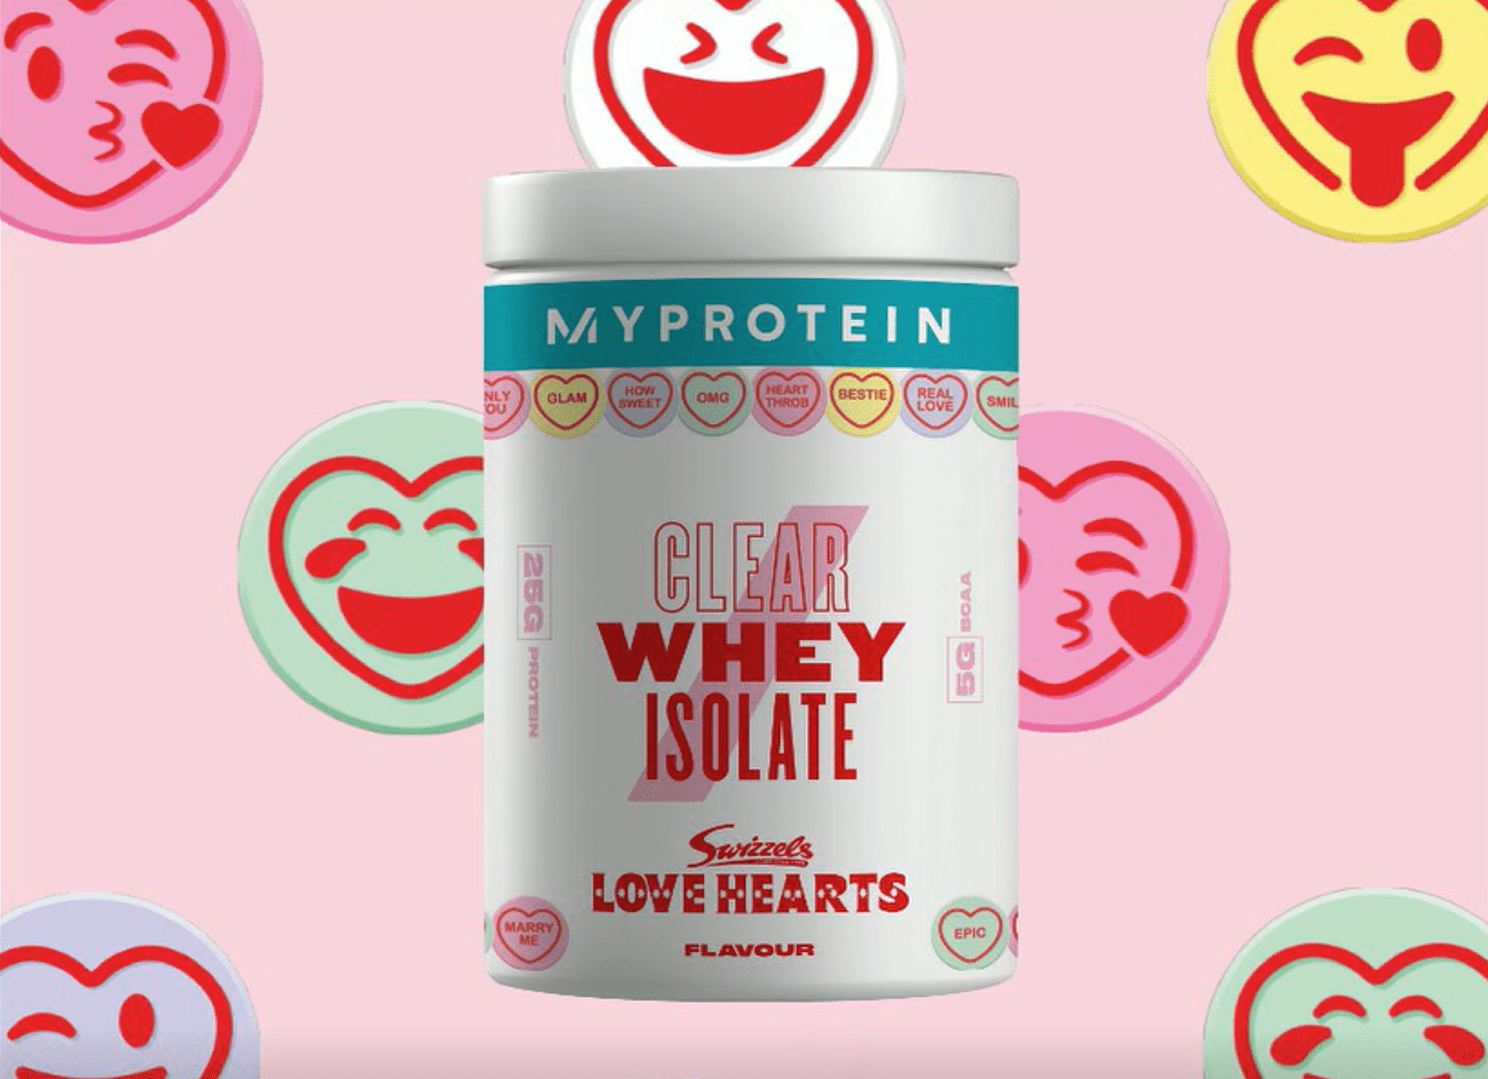 Clear Whey Love Hearts